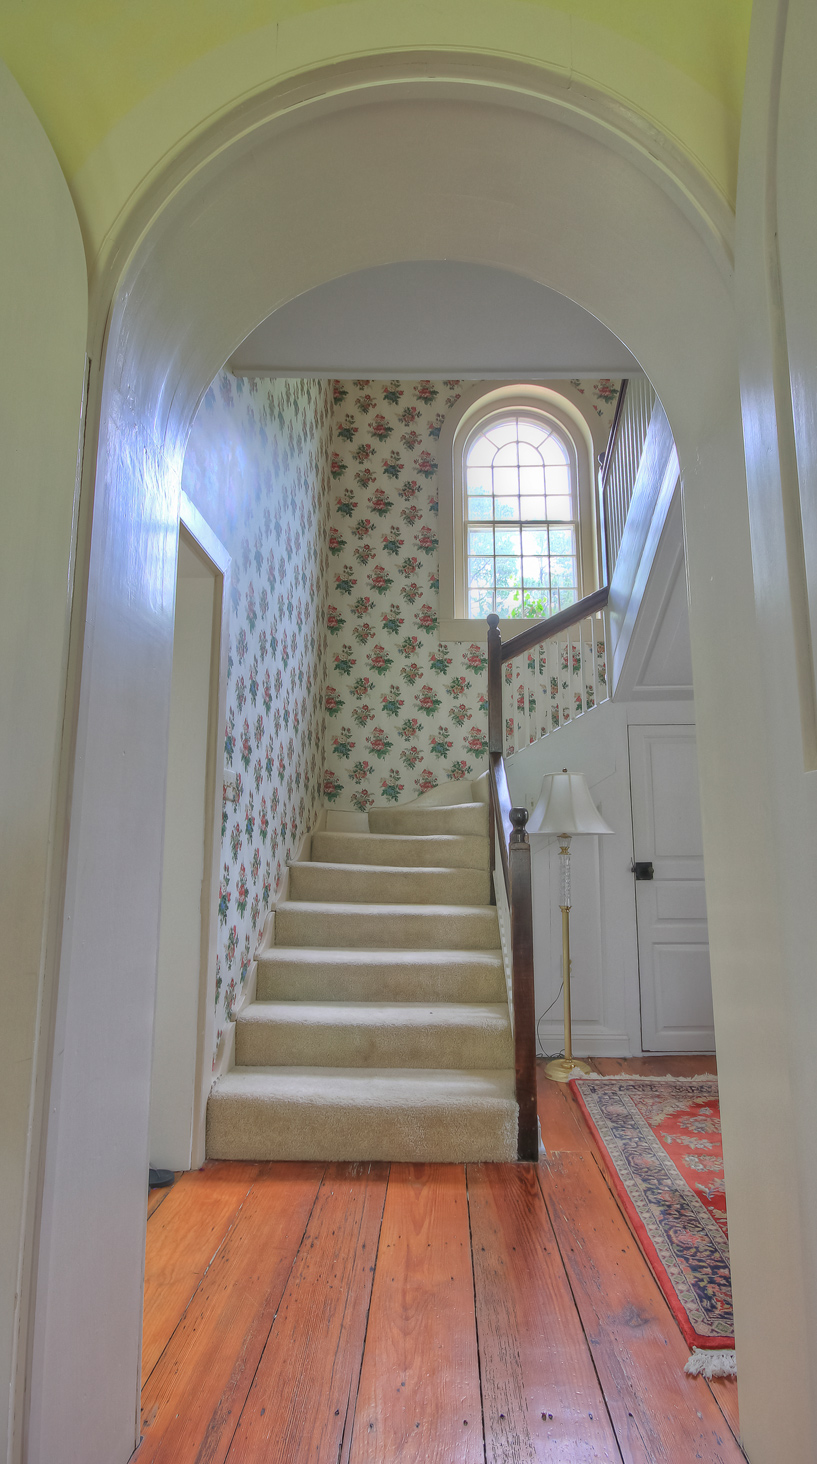 carpeted staircase leading to upstairs room at combsberry inn